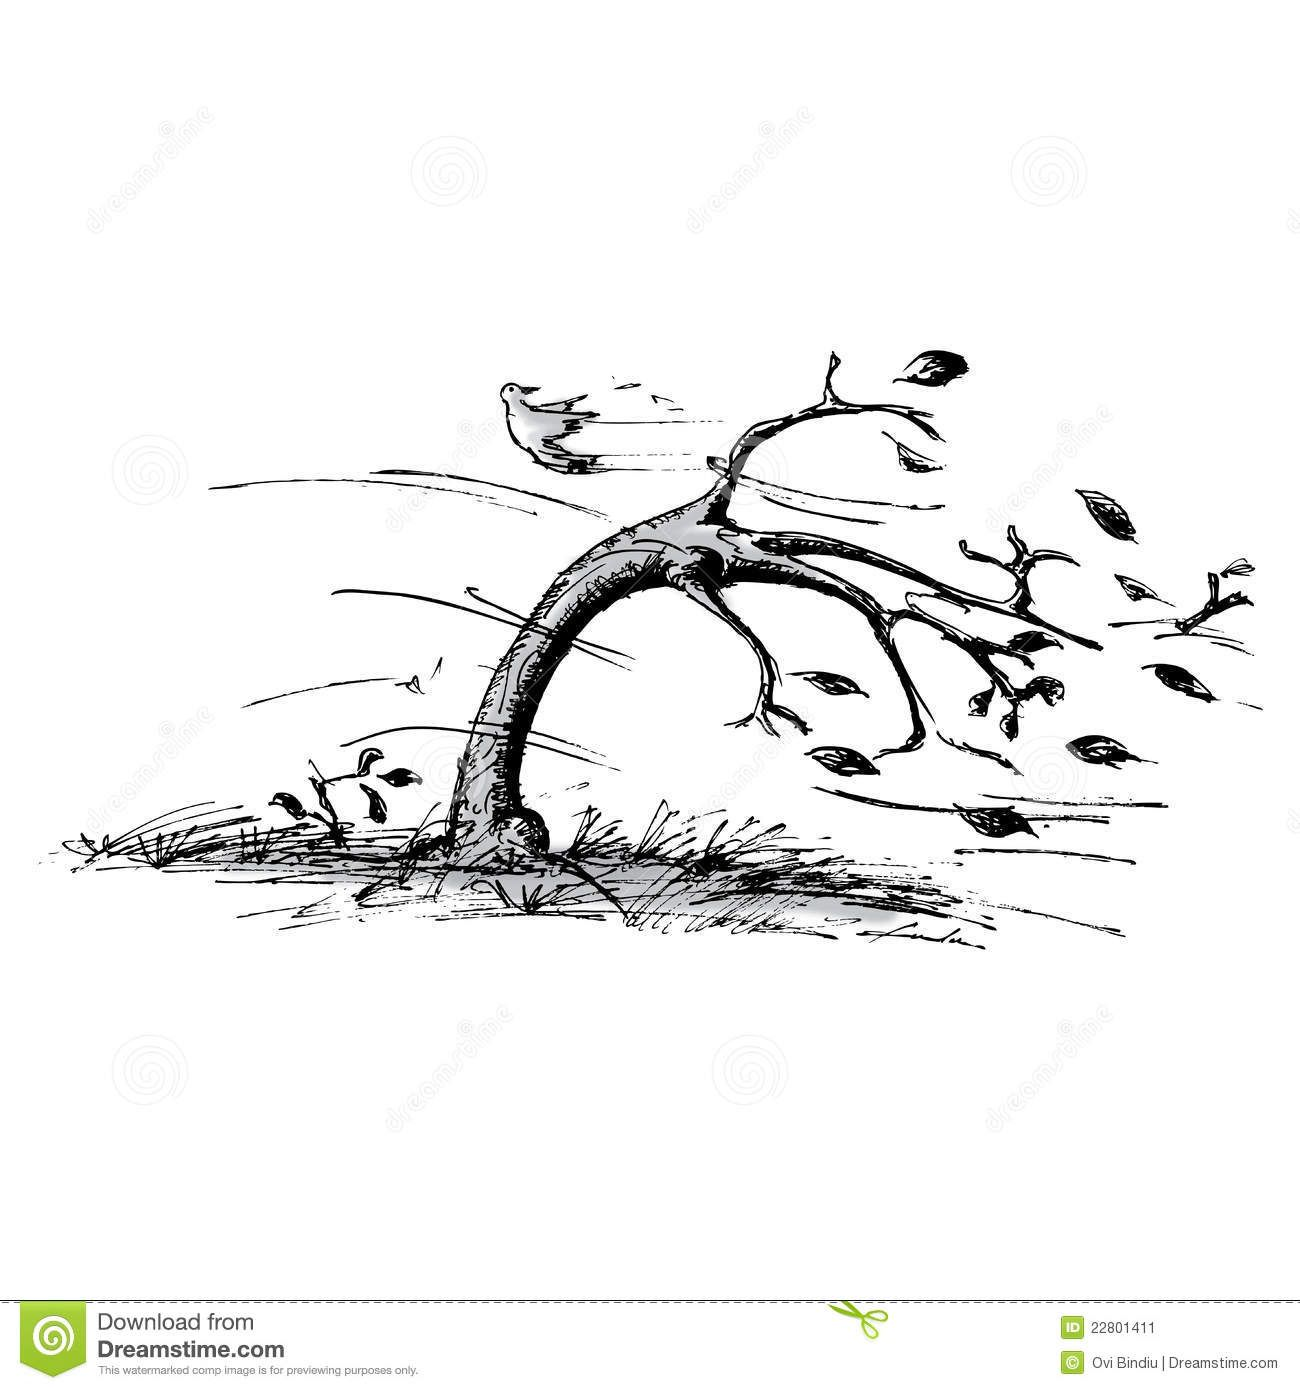 Wind clipart wind damage. Image result for blowing